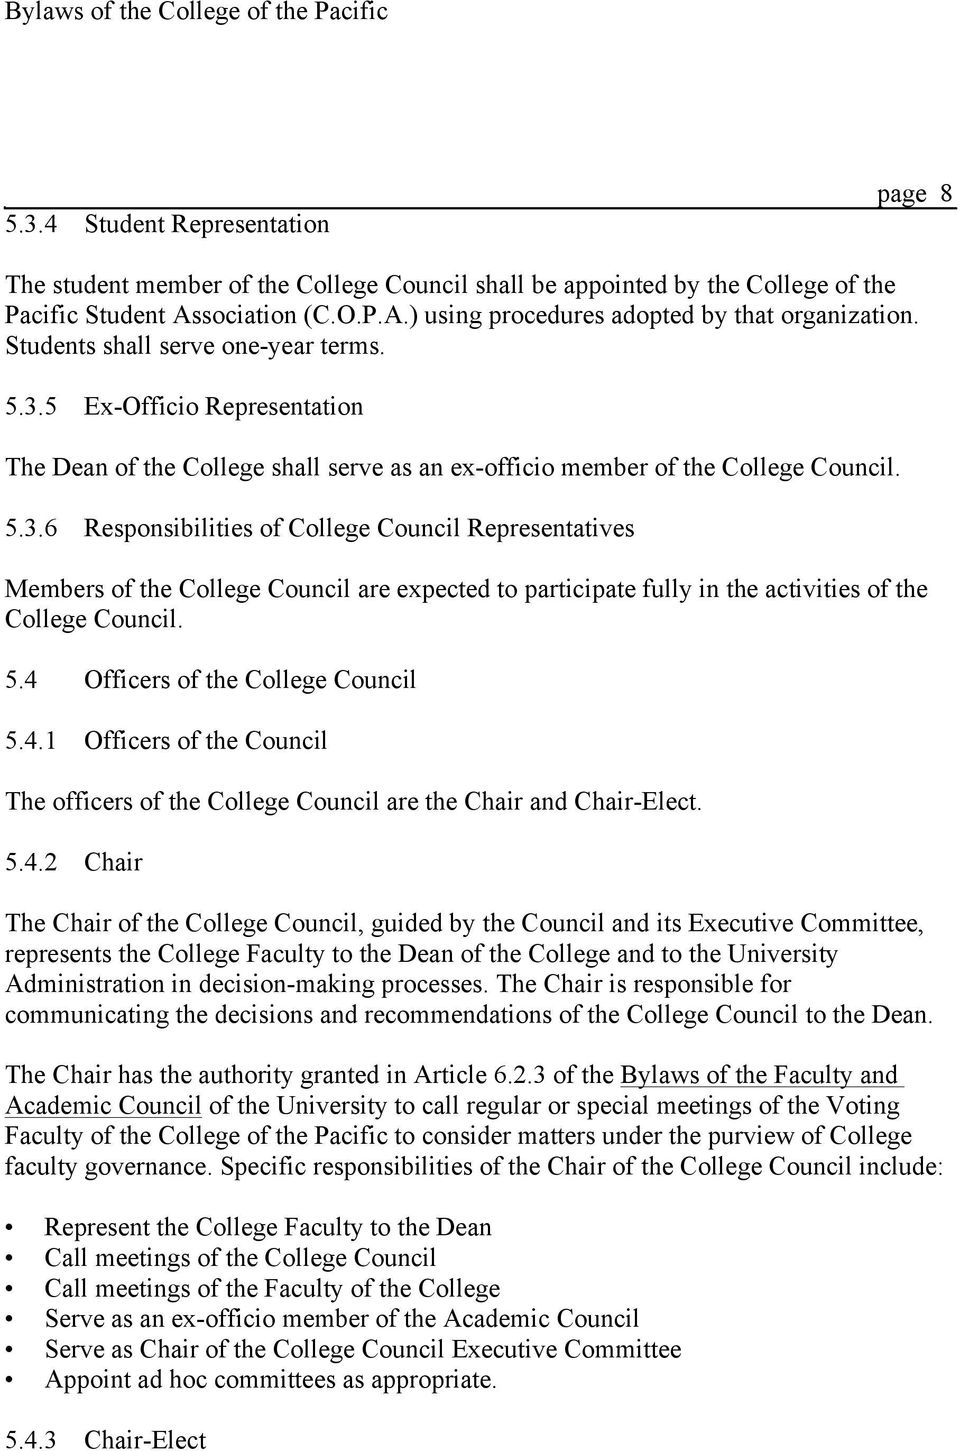 5 Ex-Officio Representation The Dean of the College shall serve as an ex-officio member of the College Council. 5.3.